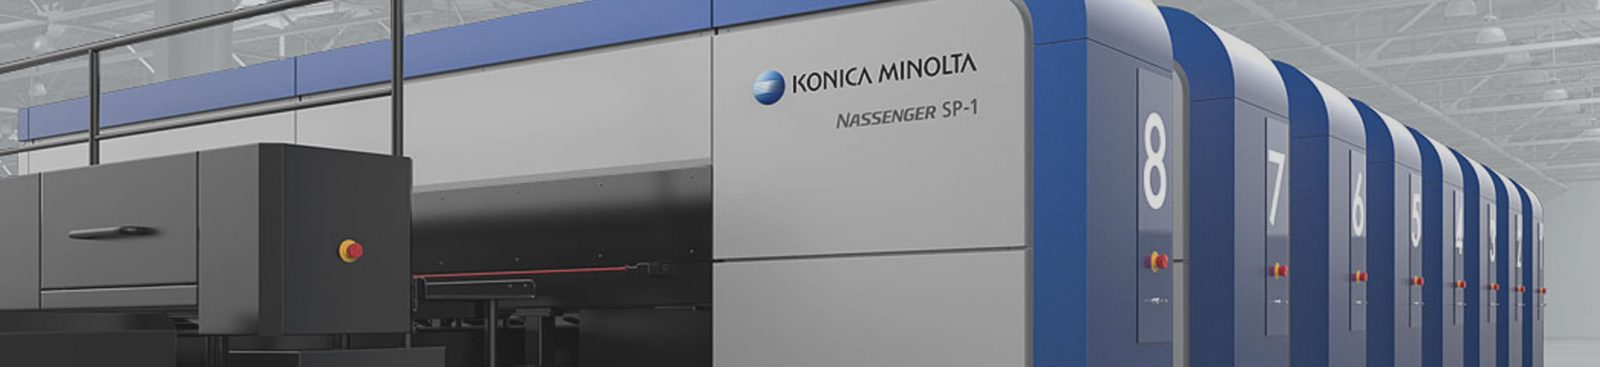 Konica Minolta joins RE100 to help combat climate change image